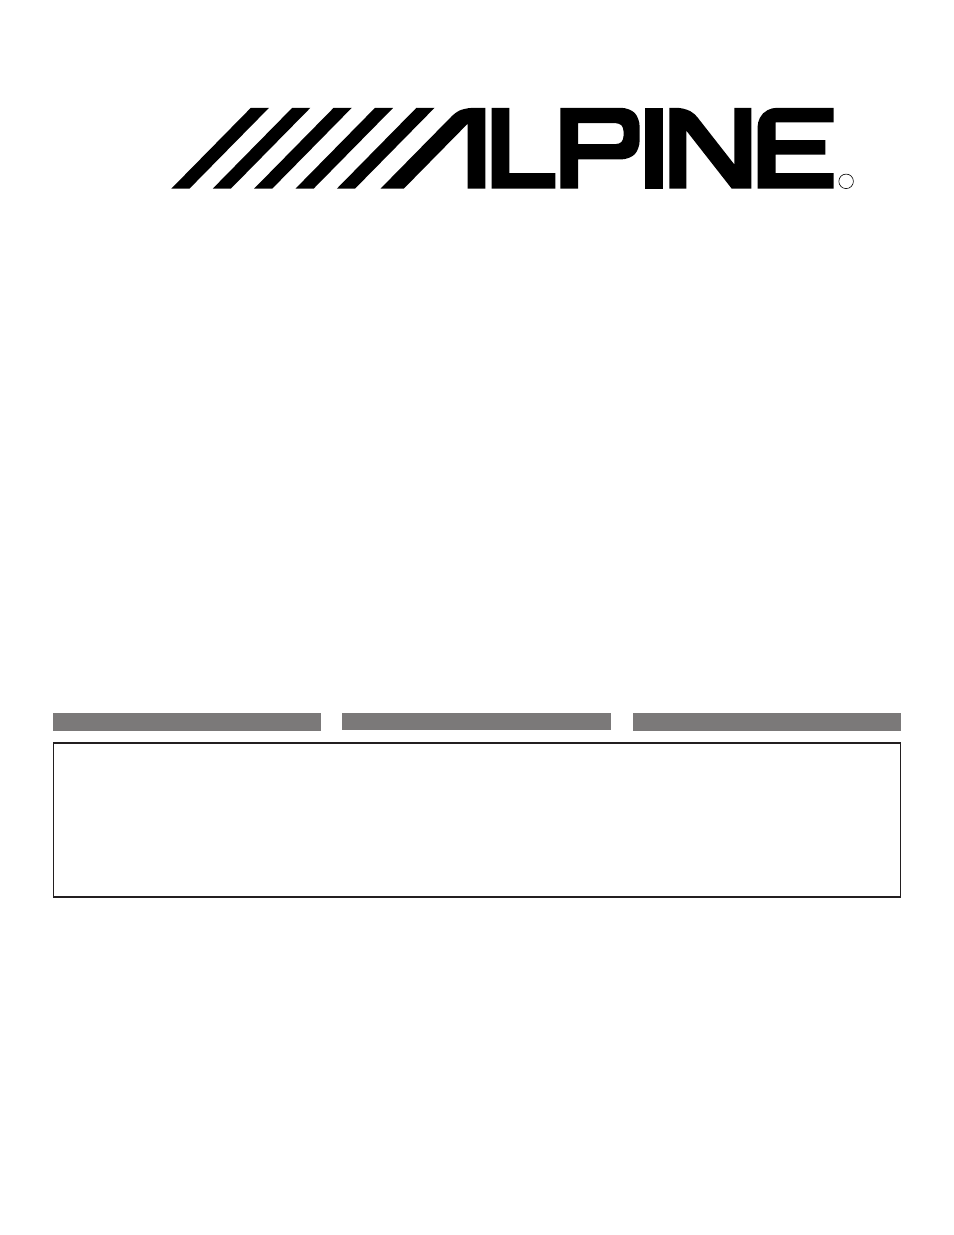 hight resolution of alpine mrv f450 user manual 20 pages original mode also for alpine mrp f450 wiring diagram